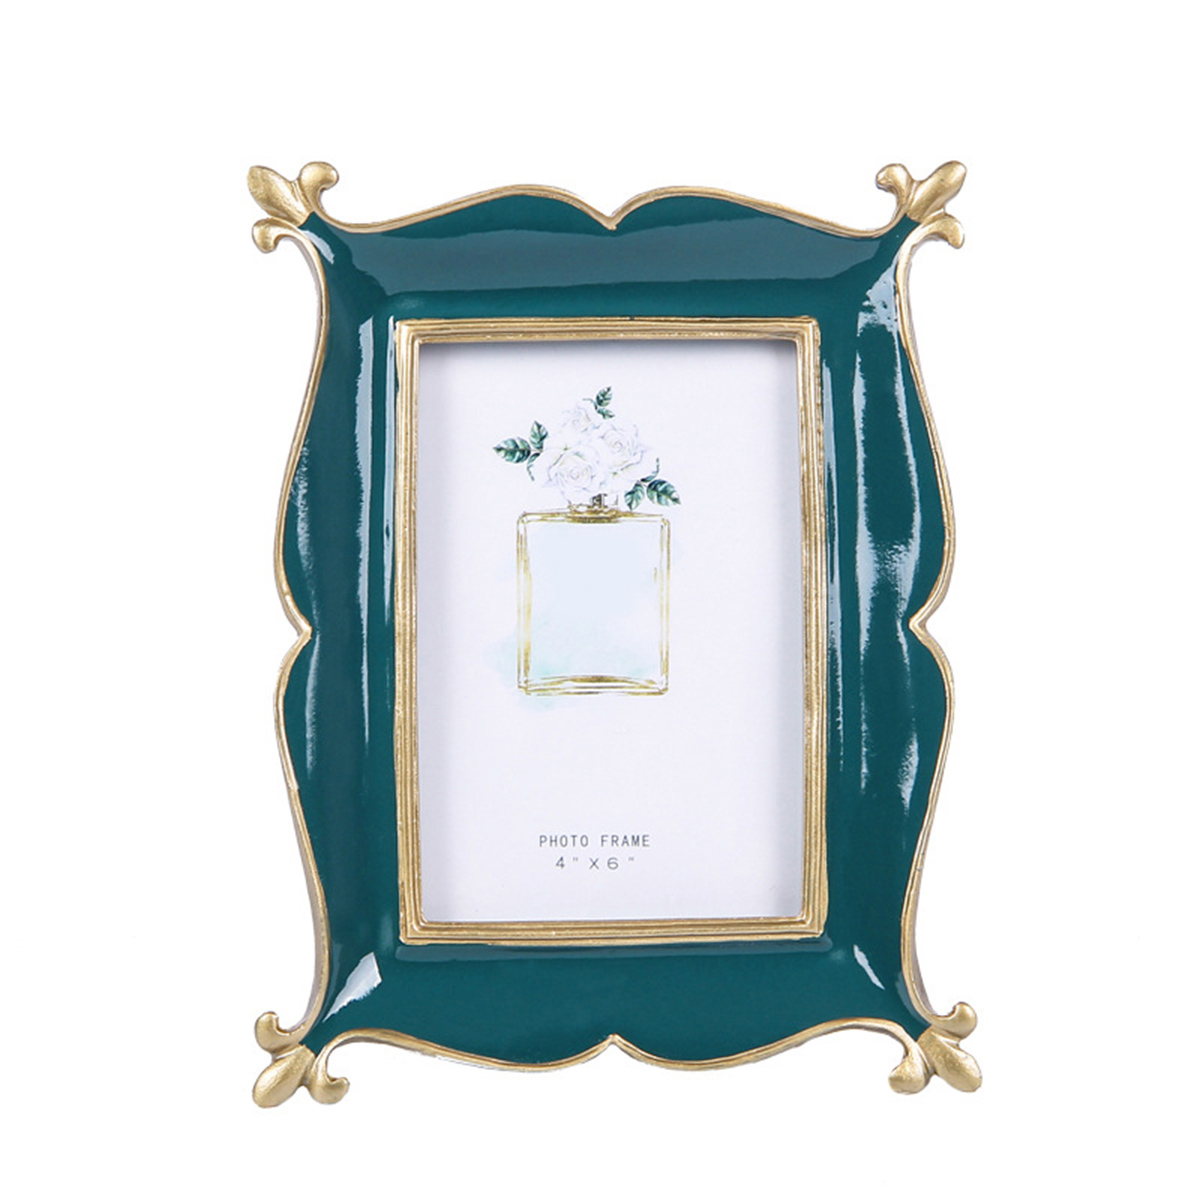 21.5X16.5X1.5cm Wooden Photo Frame Retro For Wedding Party Family Home Decor Picture Desktop Picture Frame Art Gift Ornament